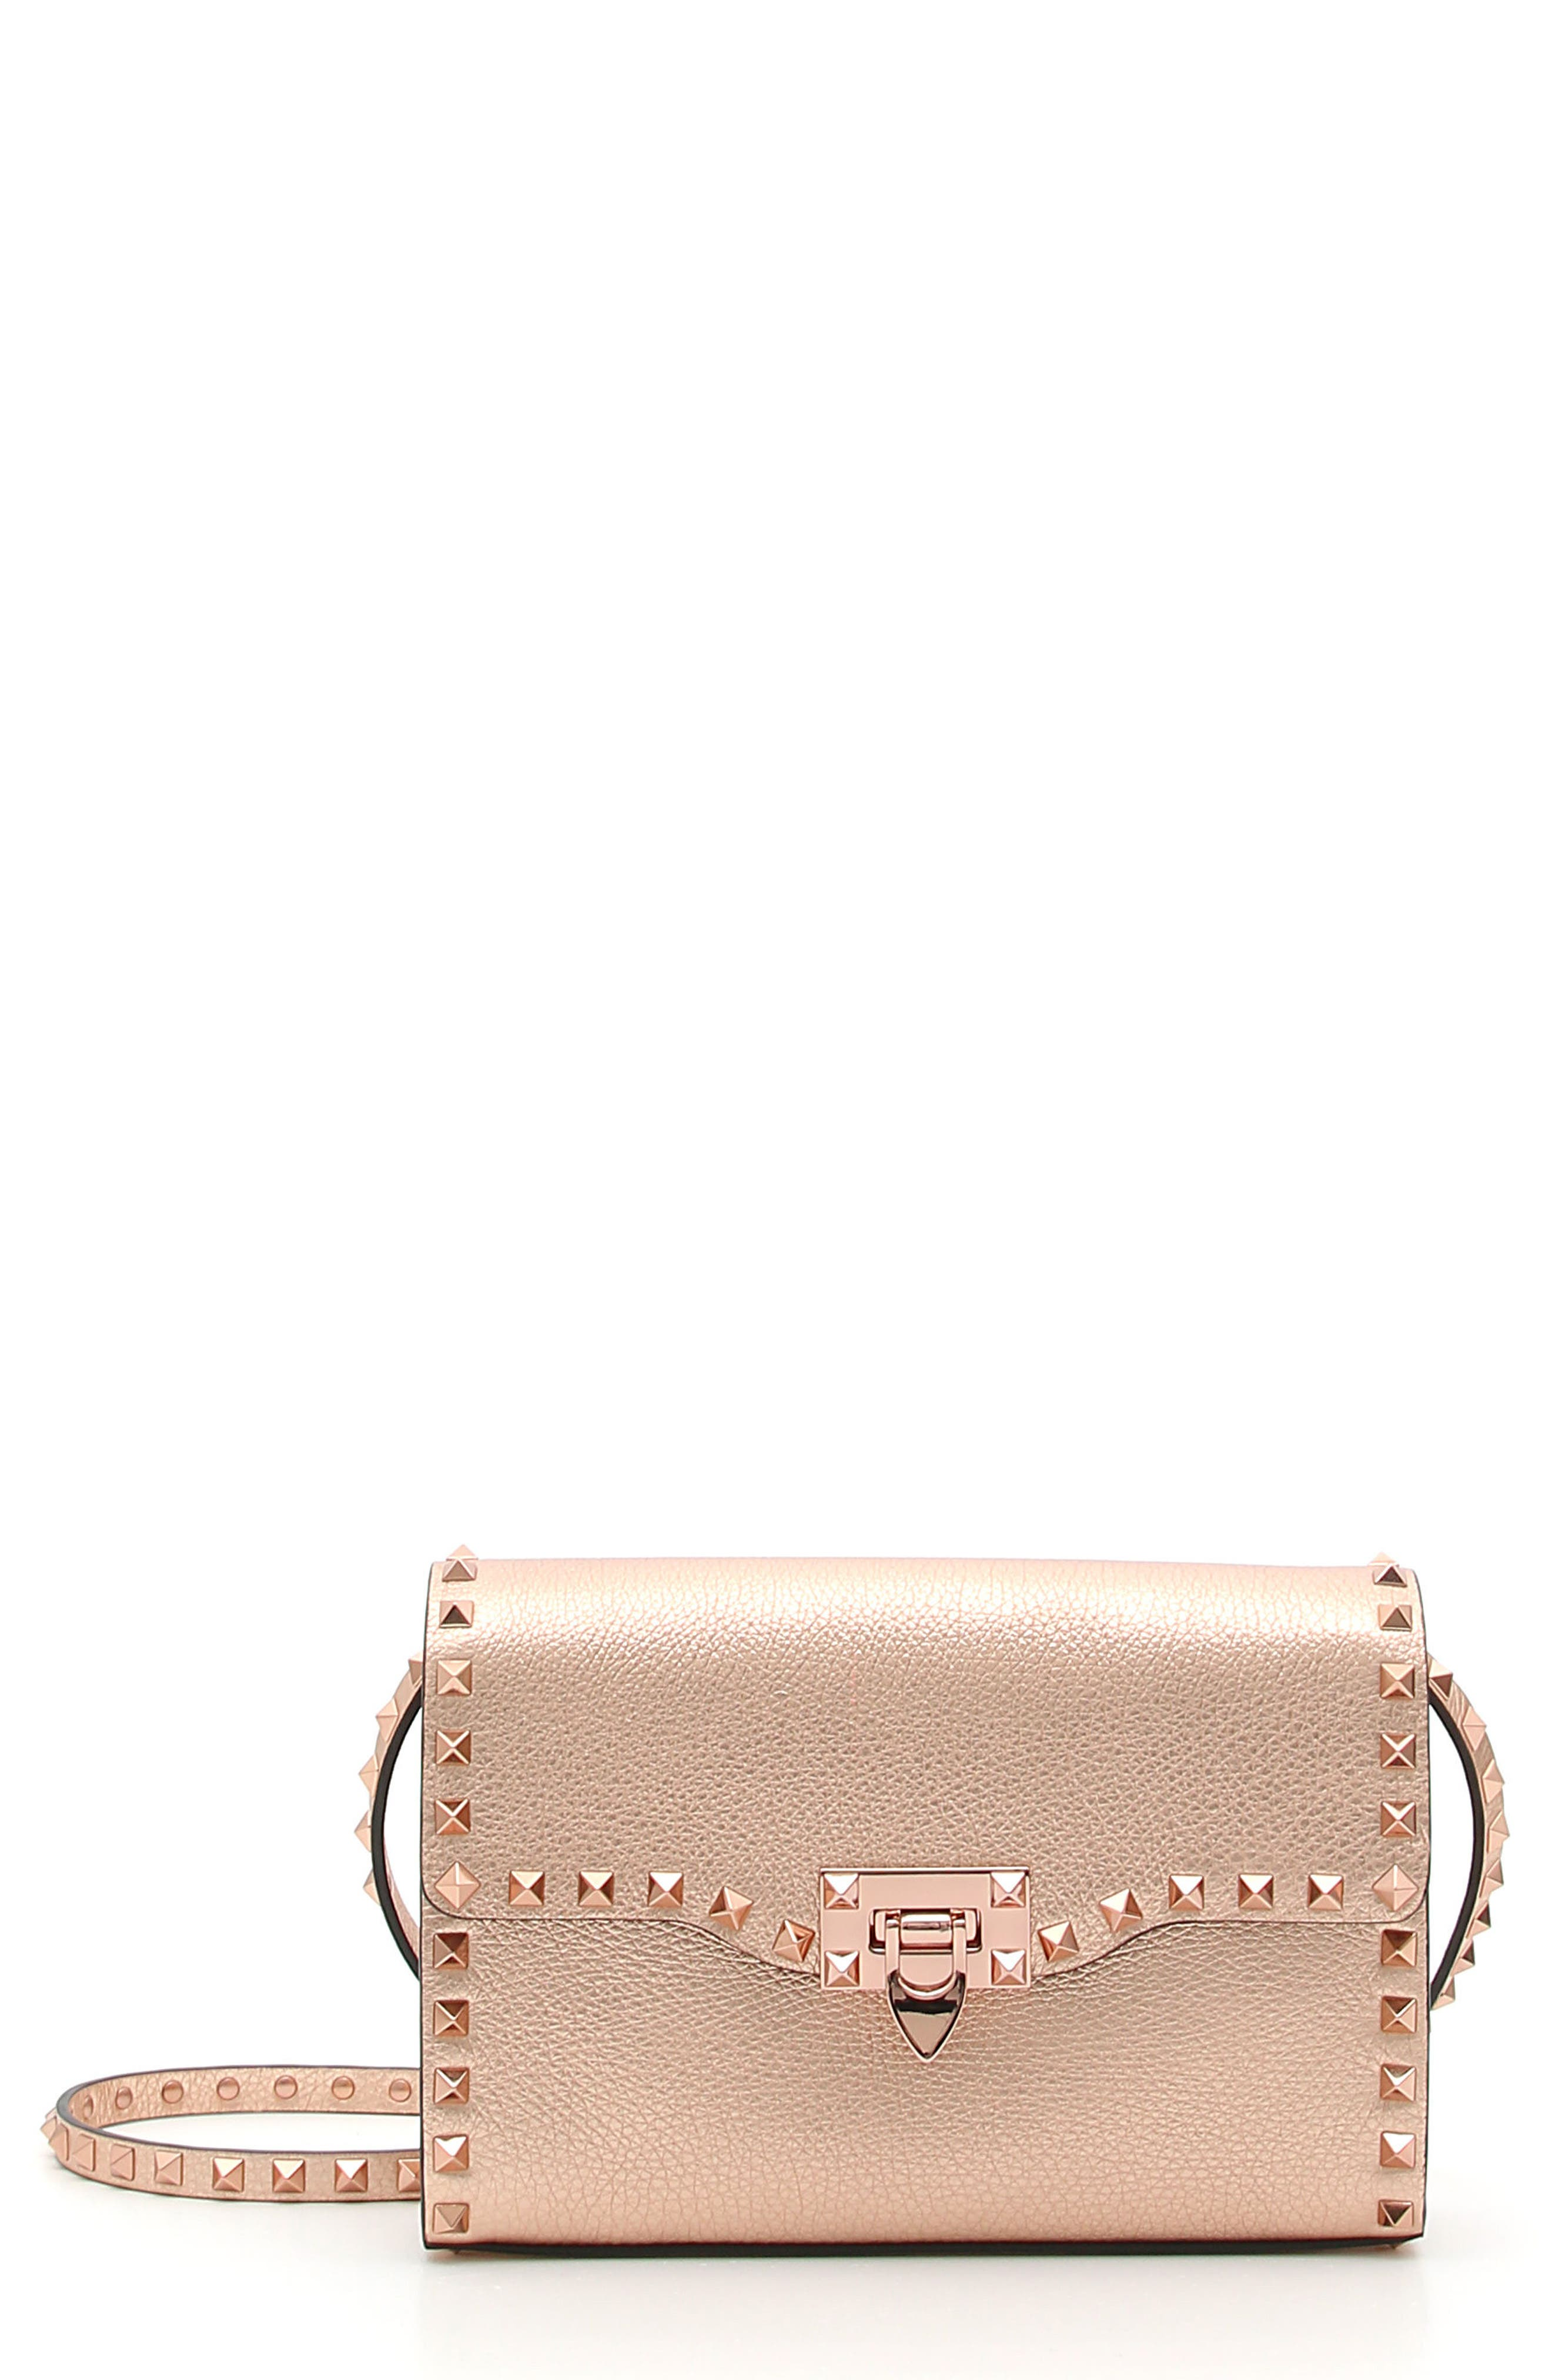 Rockstud Medium Metallic Leather Shoulder Bag,                         Main,                         color, Rosegold